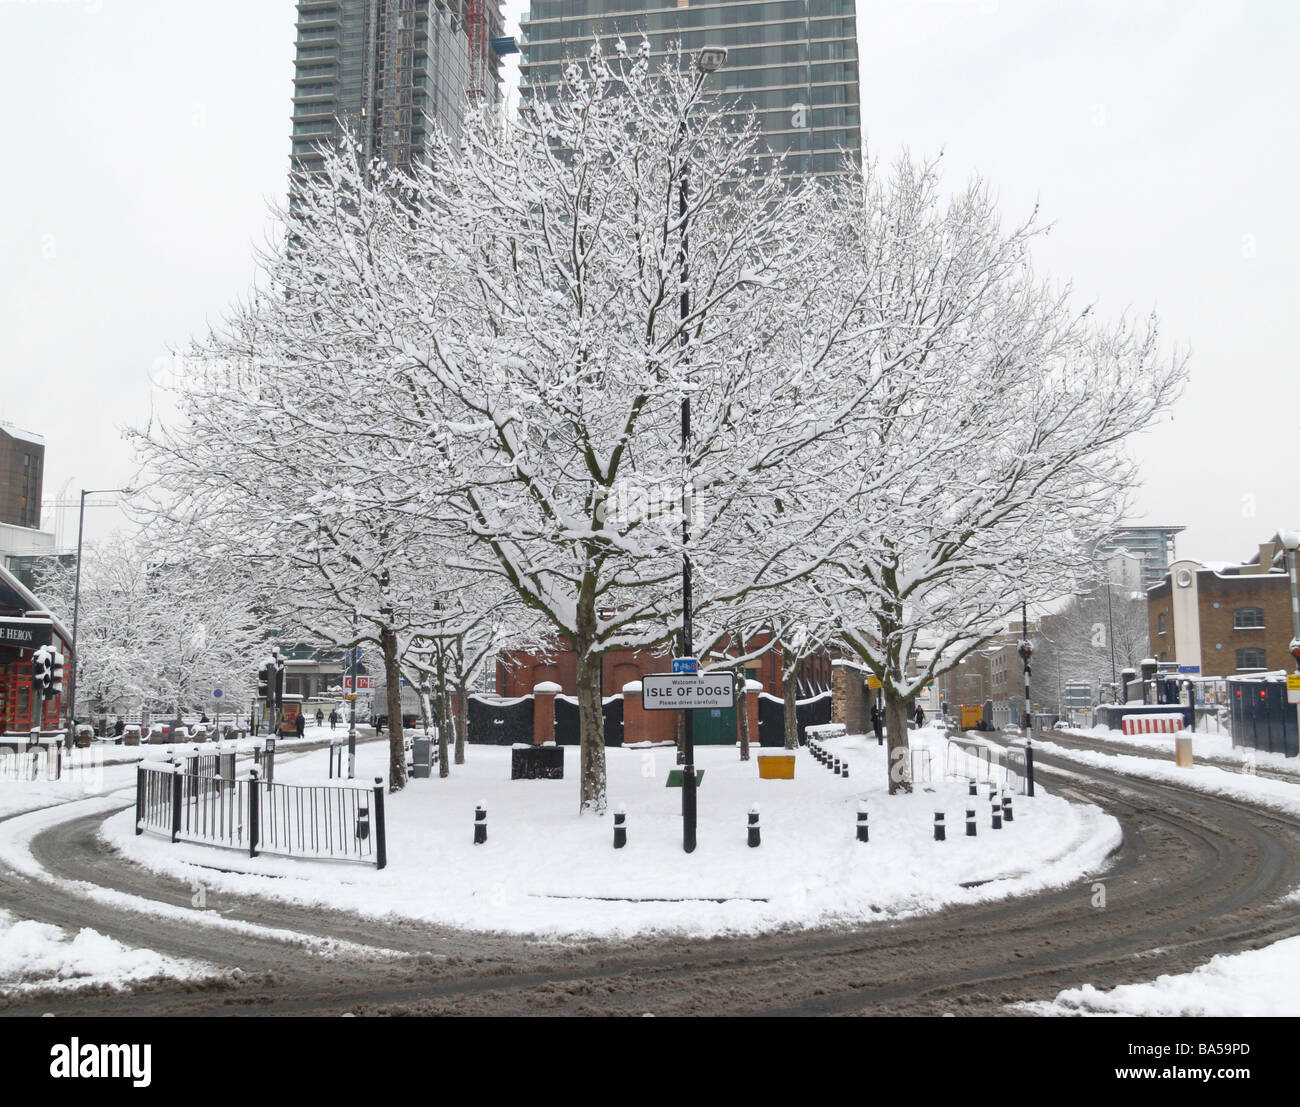 Traffic island nr Heron Quays London UK with Isle of Dogs sign in snow - Stock Image